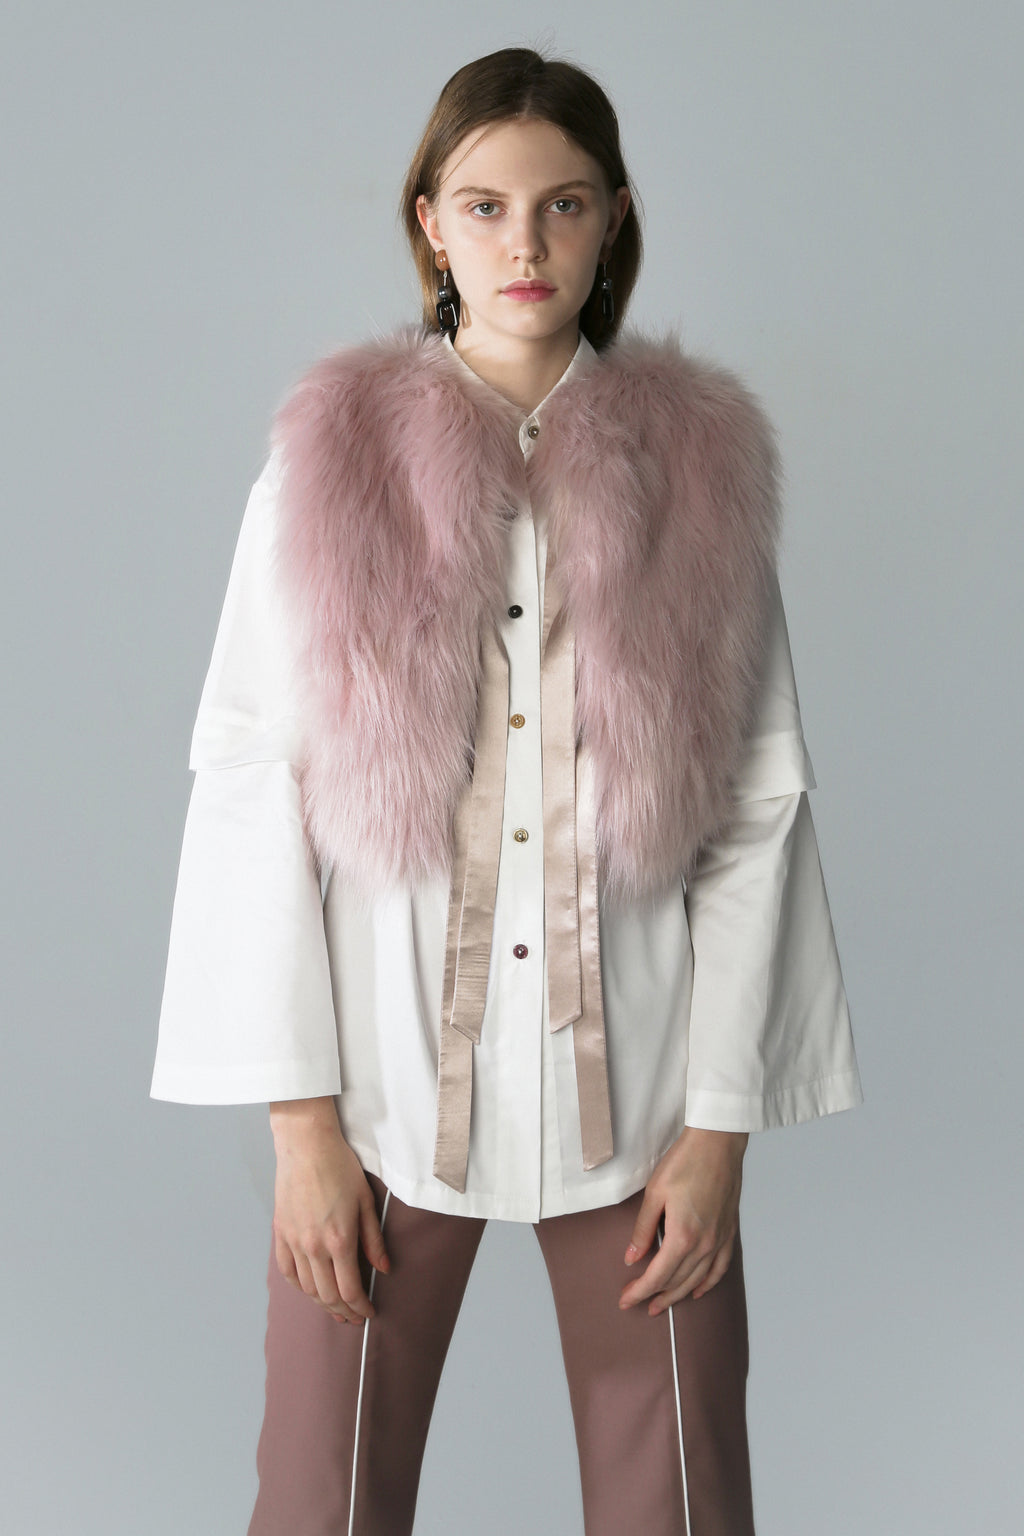 Man-Made Fur Sleeveless Jacket